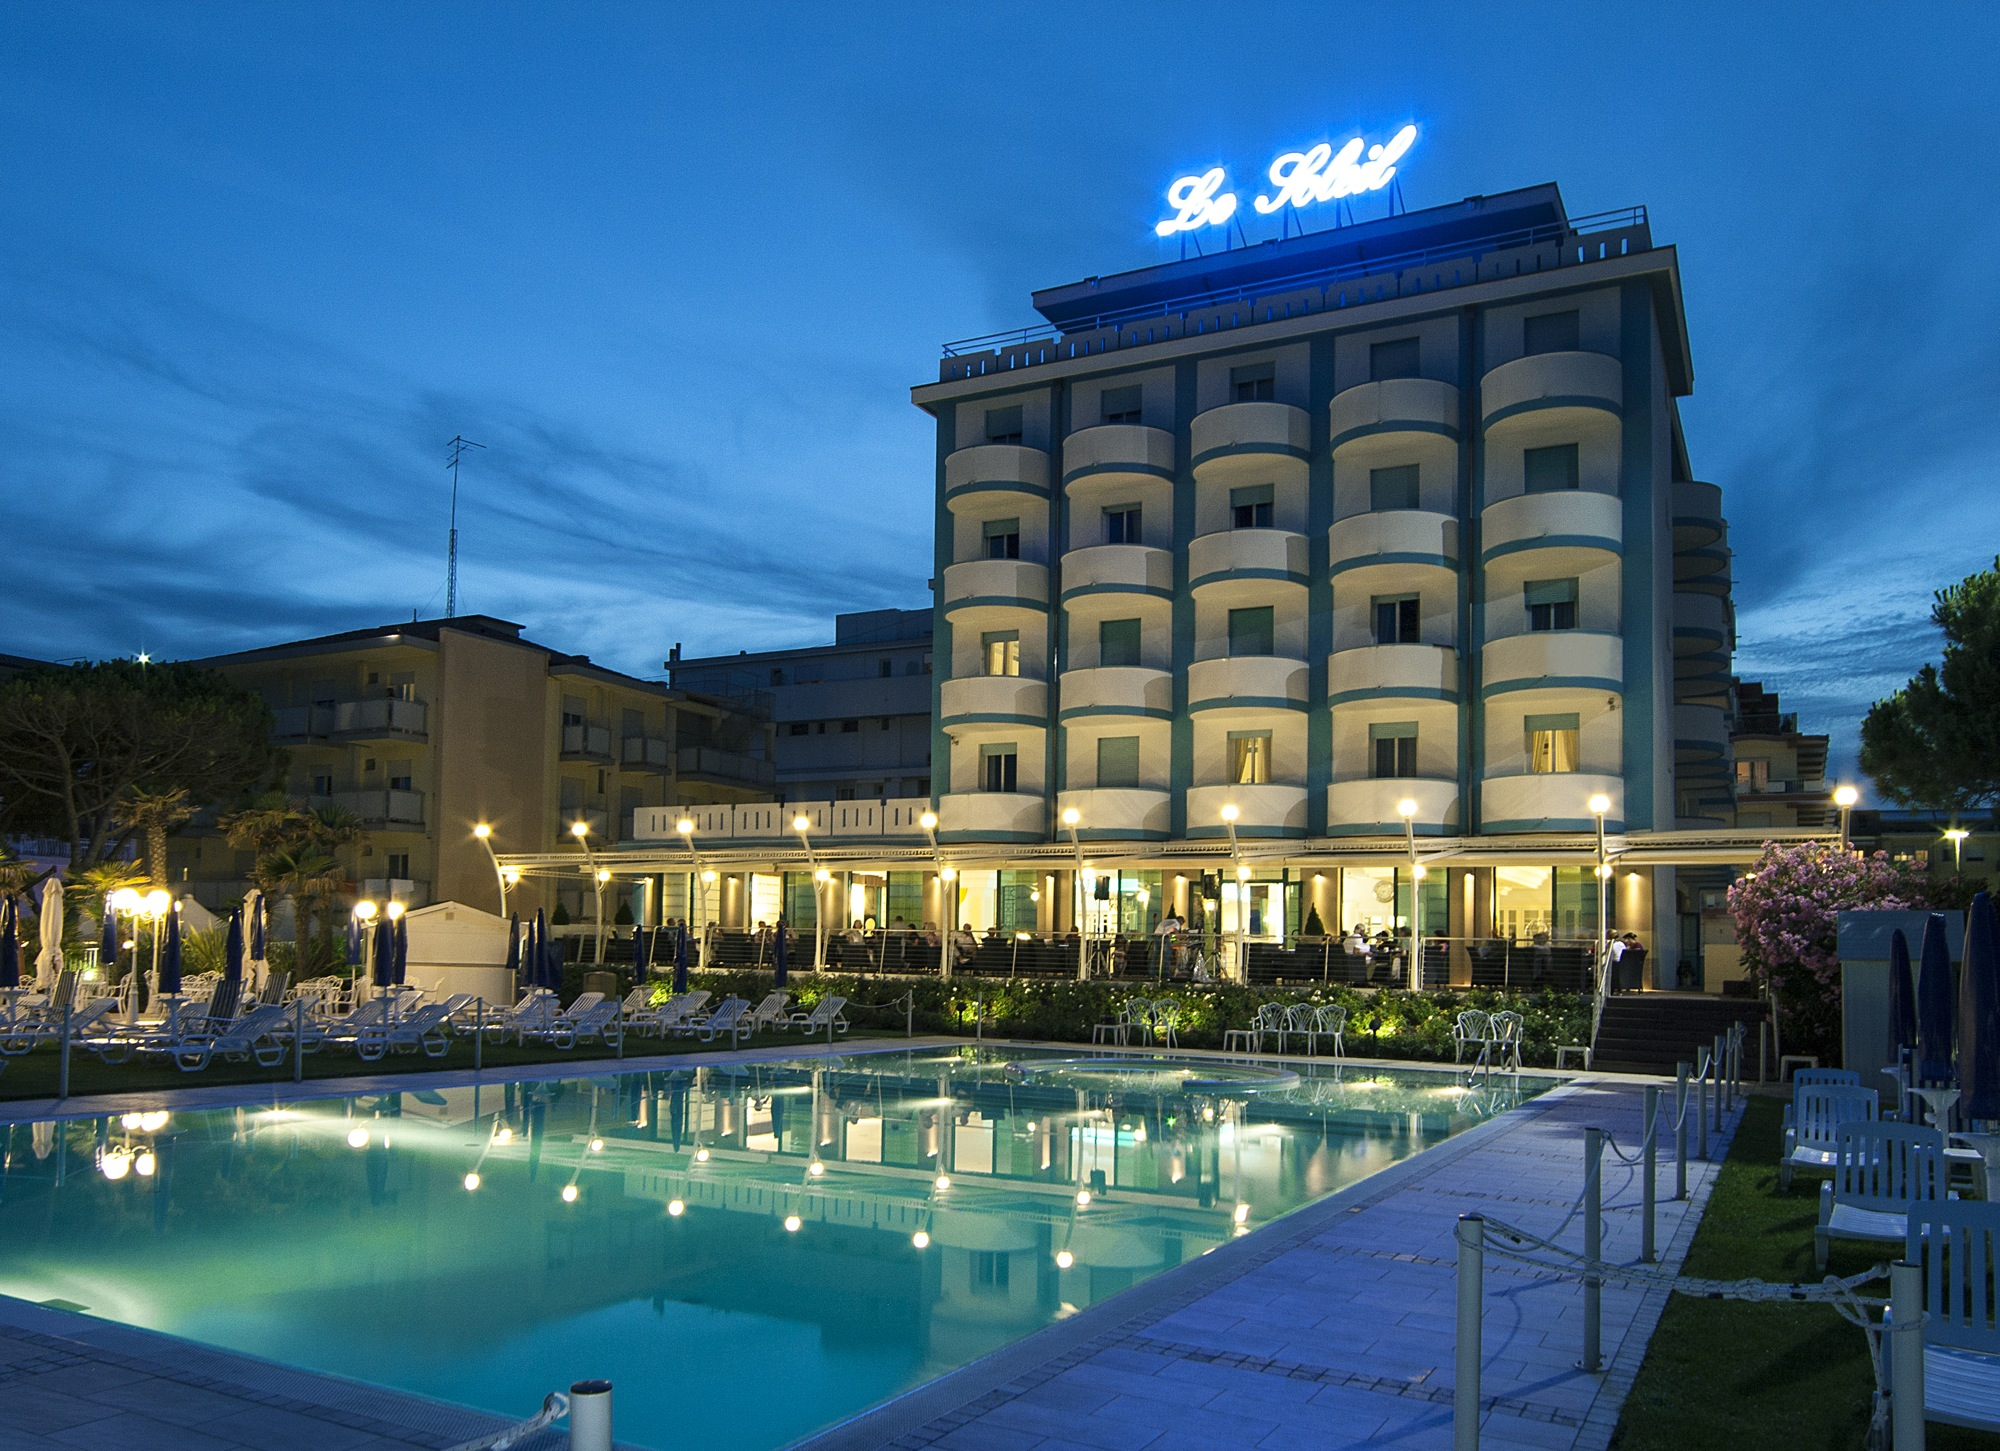 Jesolo Italy  City pictures : Hotel Le Soleil Jesolo, Venedig, Italien Htls.it